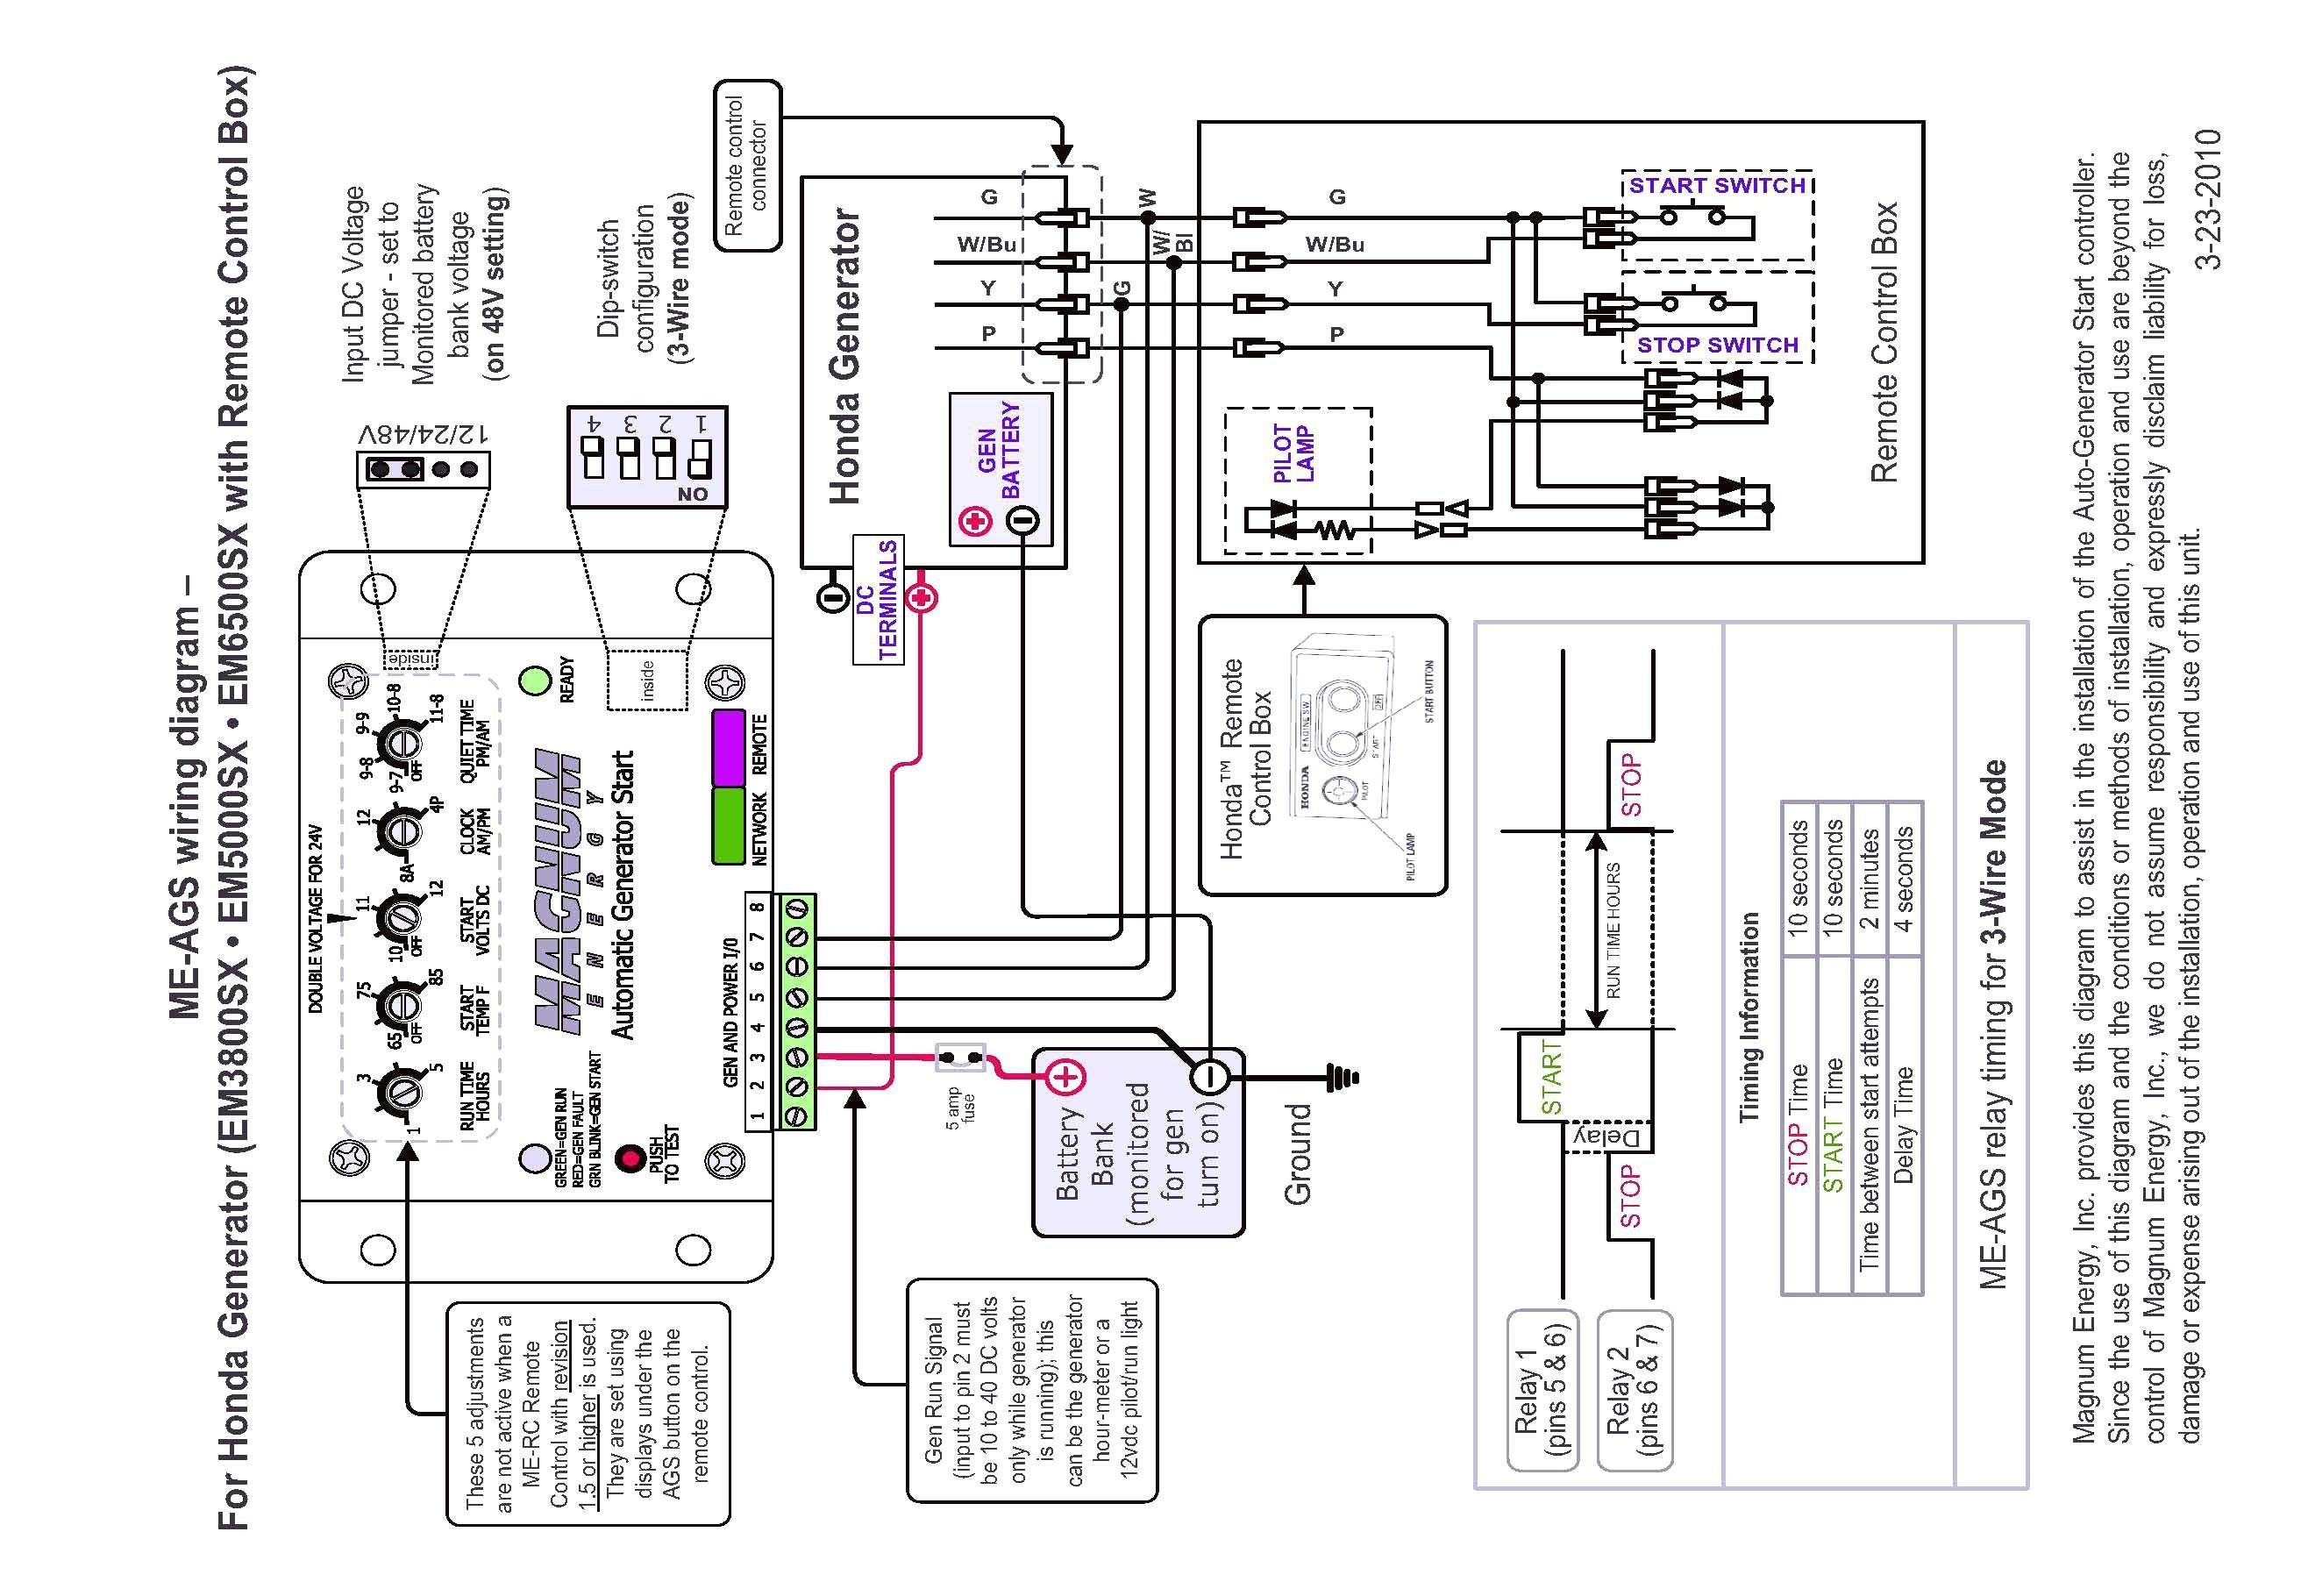 Ne 3039 Transfer Switch Wiring Diagram On 200 Amp Transfer Switch Wiring Download Diagram